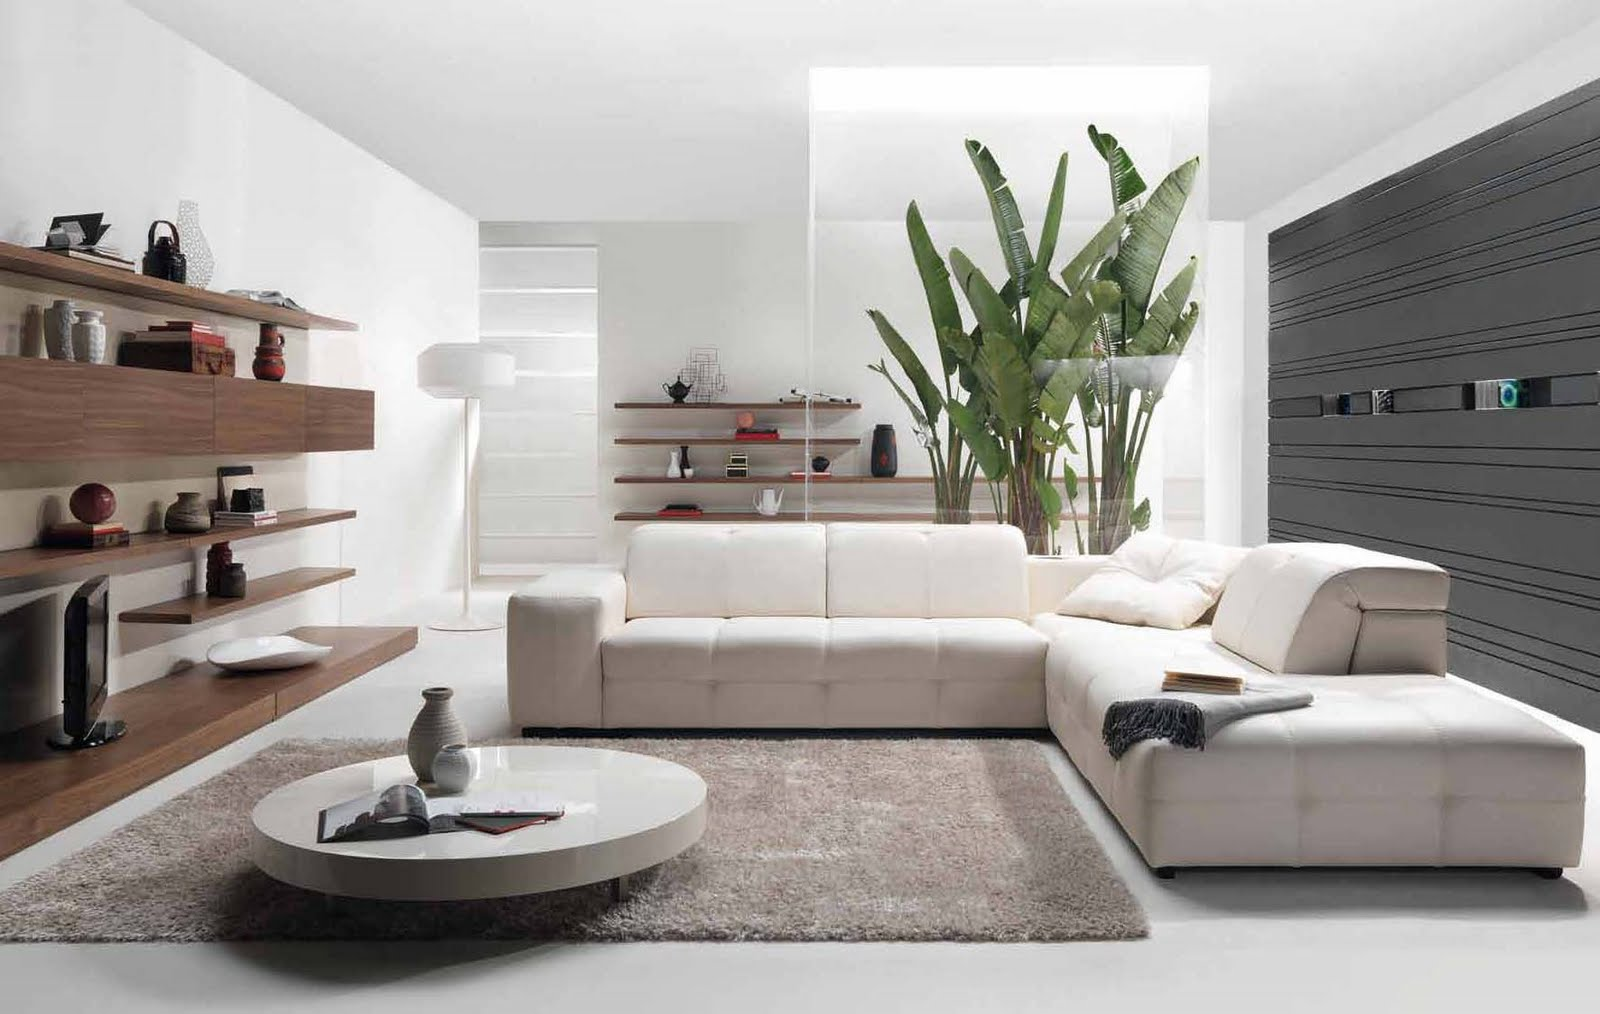 Future house design modern living room interior design for Modern style living room ideas